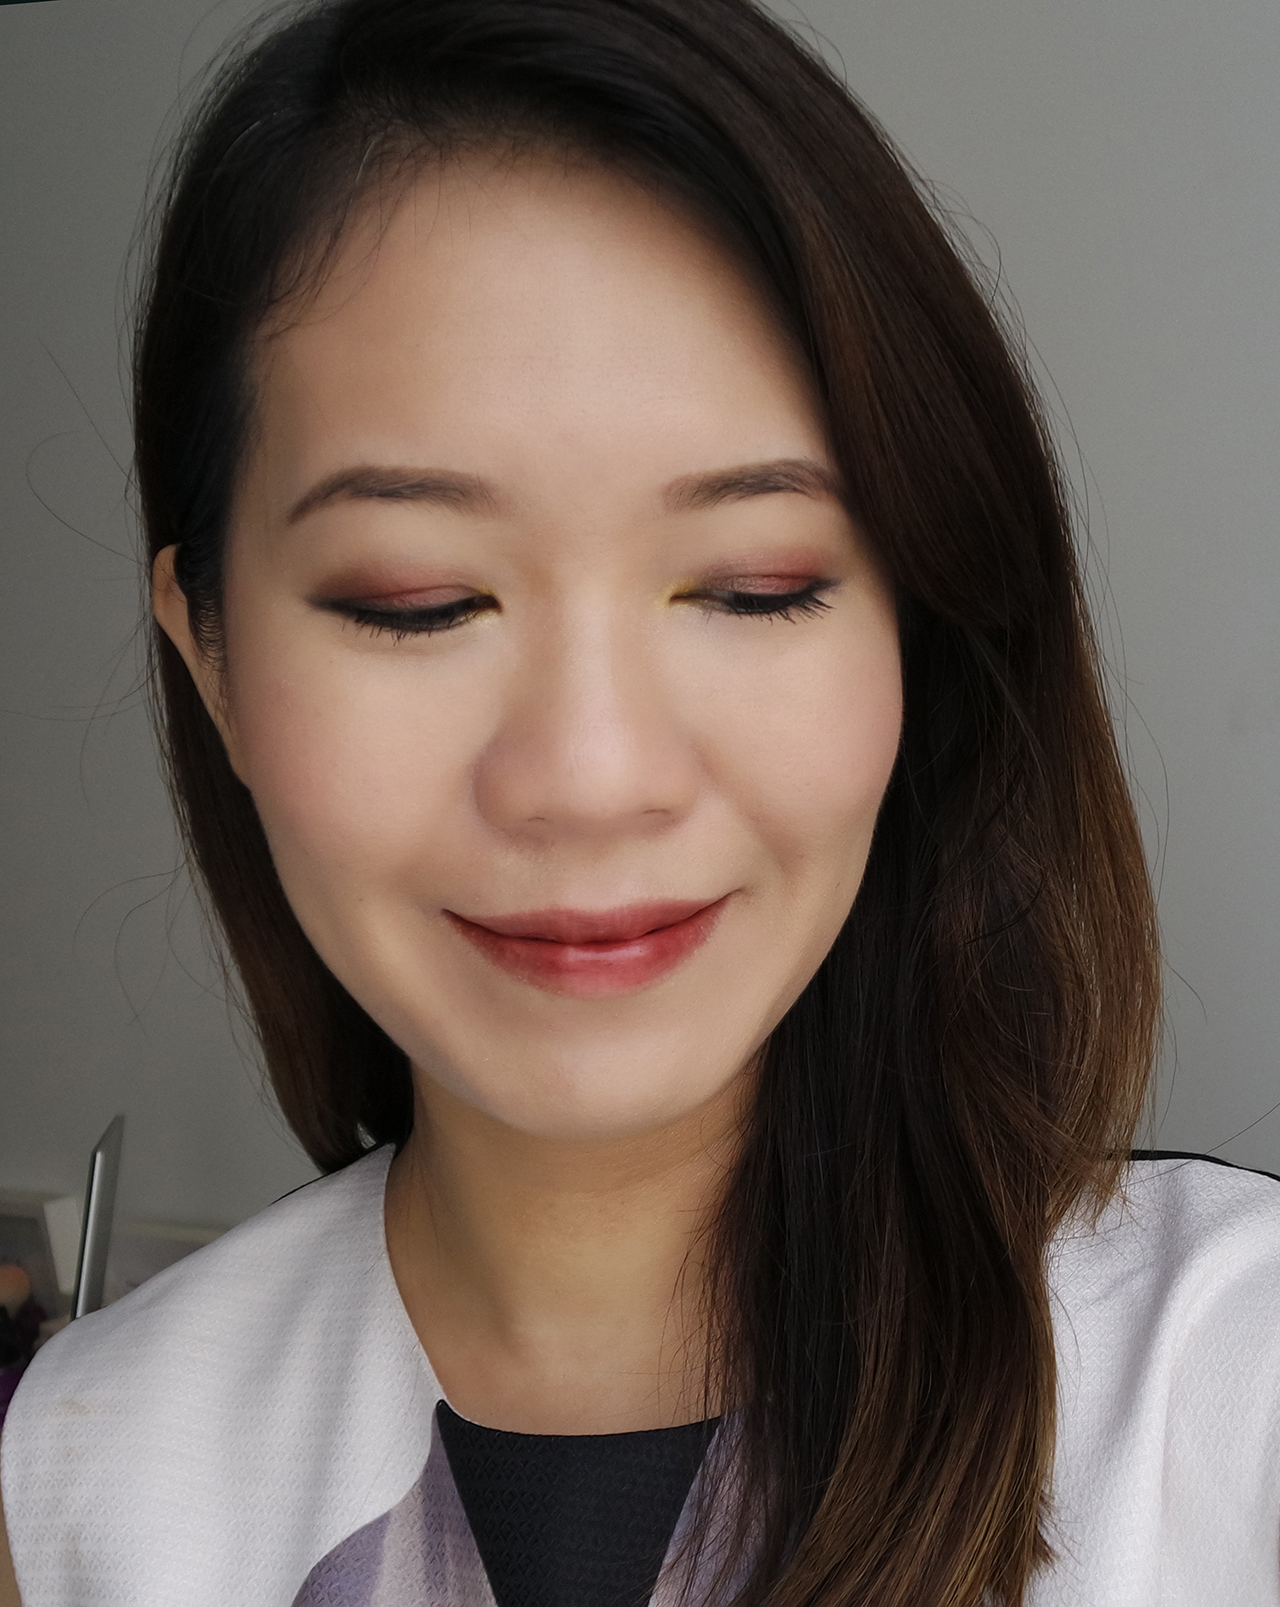 Chanel Ombre Premiere makeup look 2